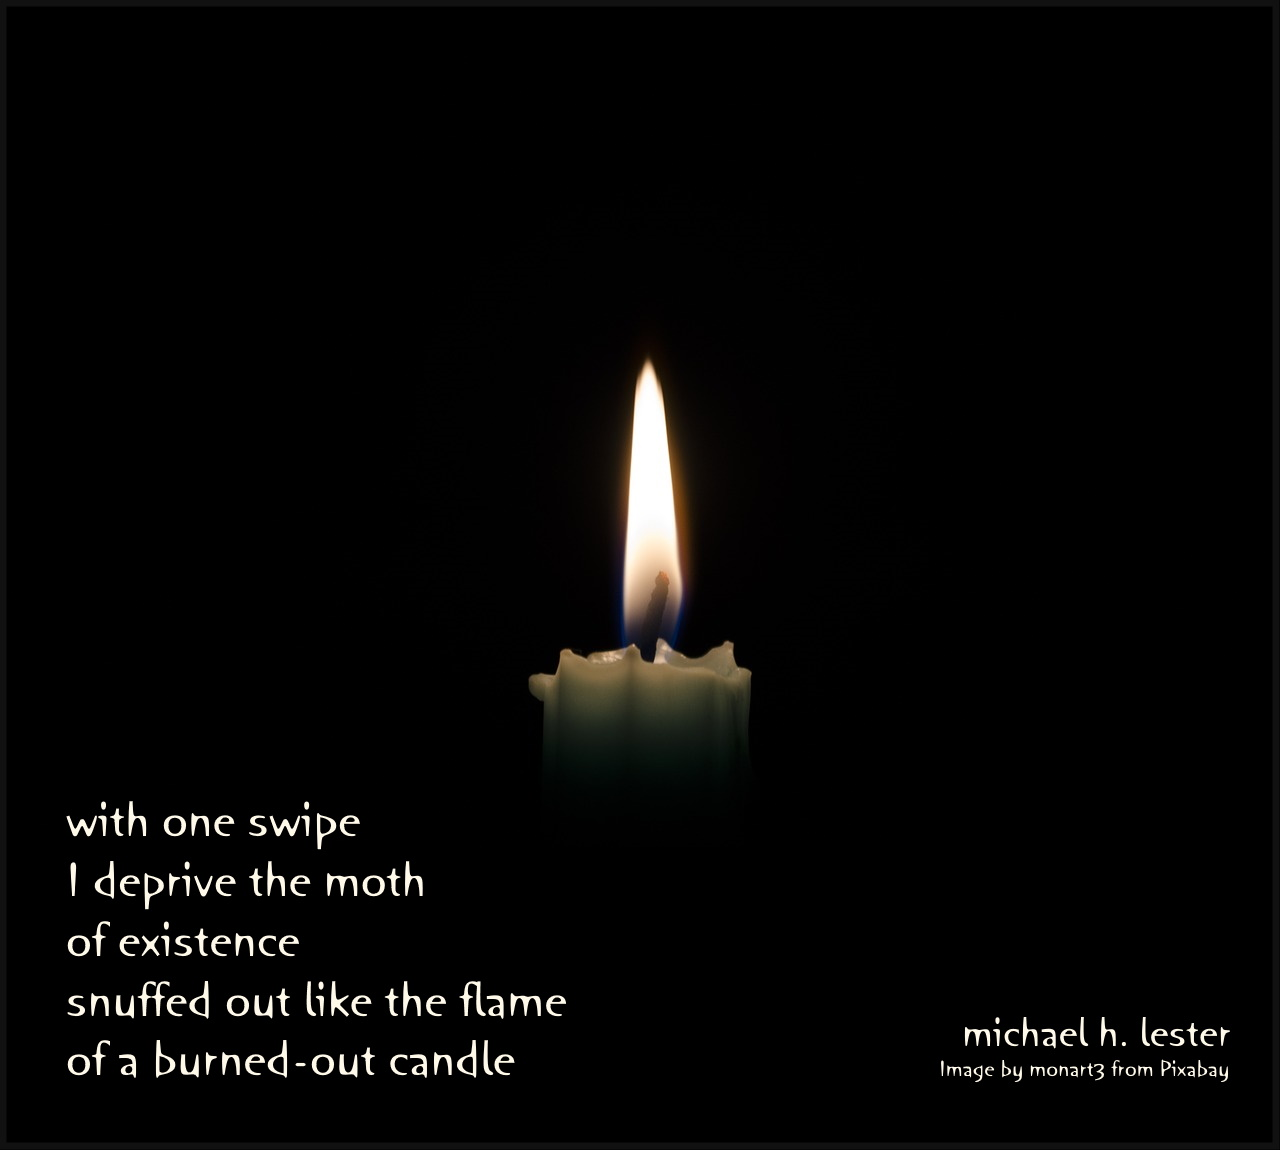 #tanka #kyoka #haiku #senryu #haiga #micropoetry #poetry  with one swipe I deprive the moth of existence snuffed out like the flame of a burned-out candle https://t.co/c5BEZu3nMY